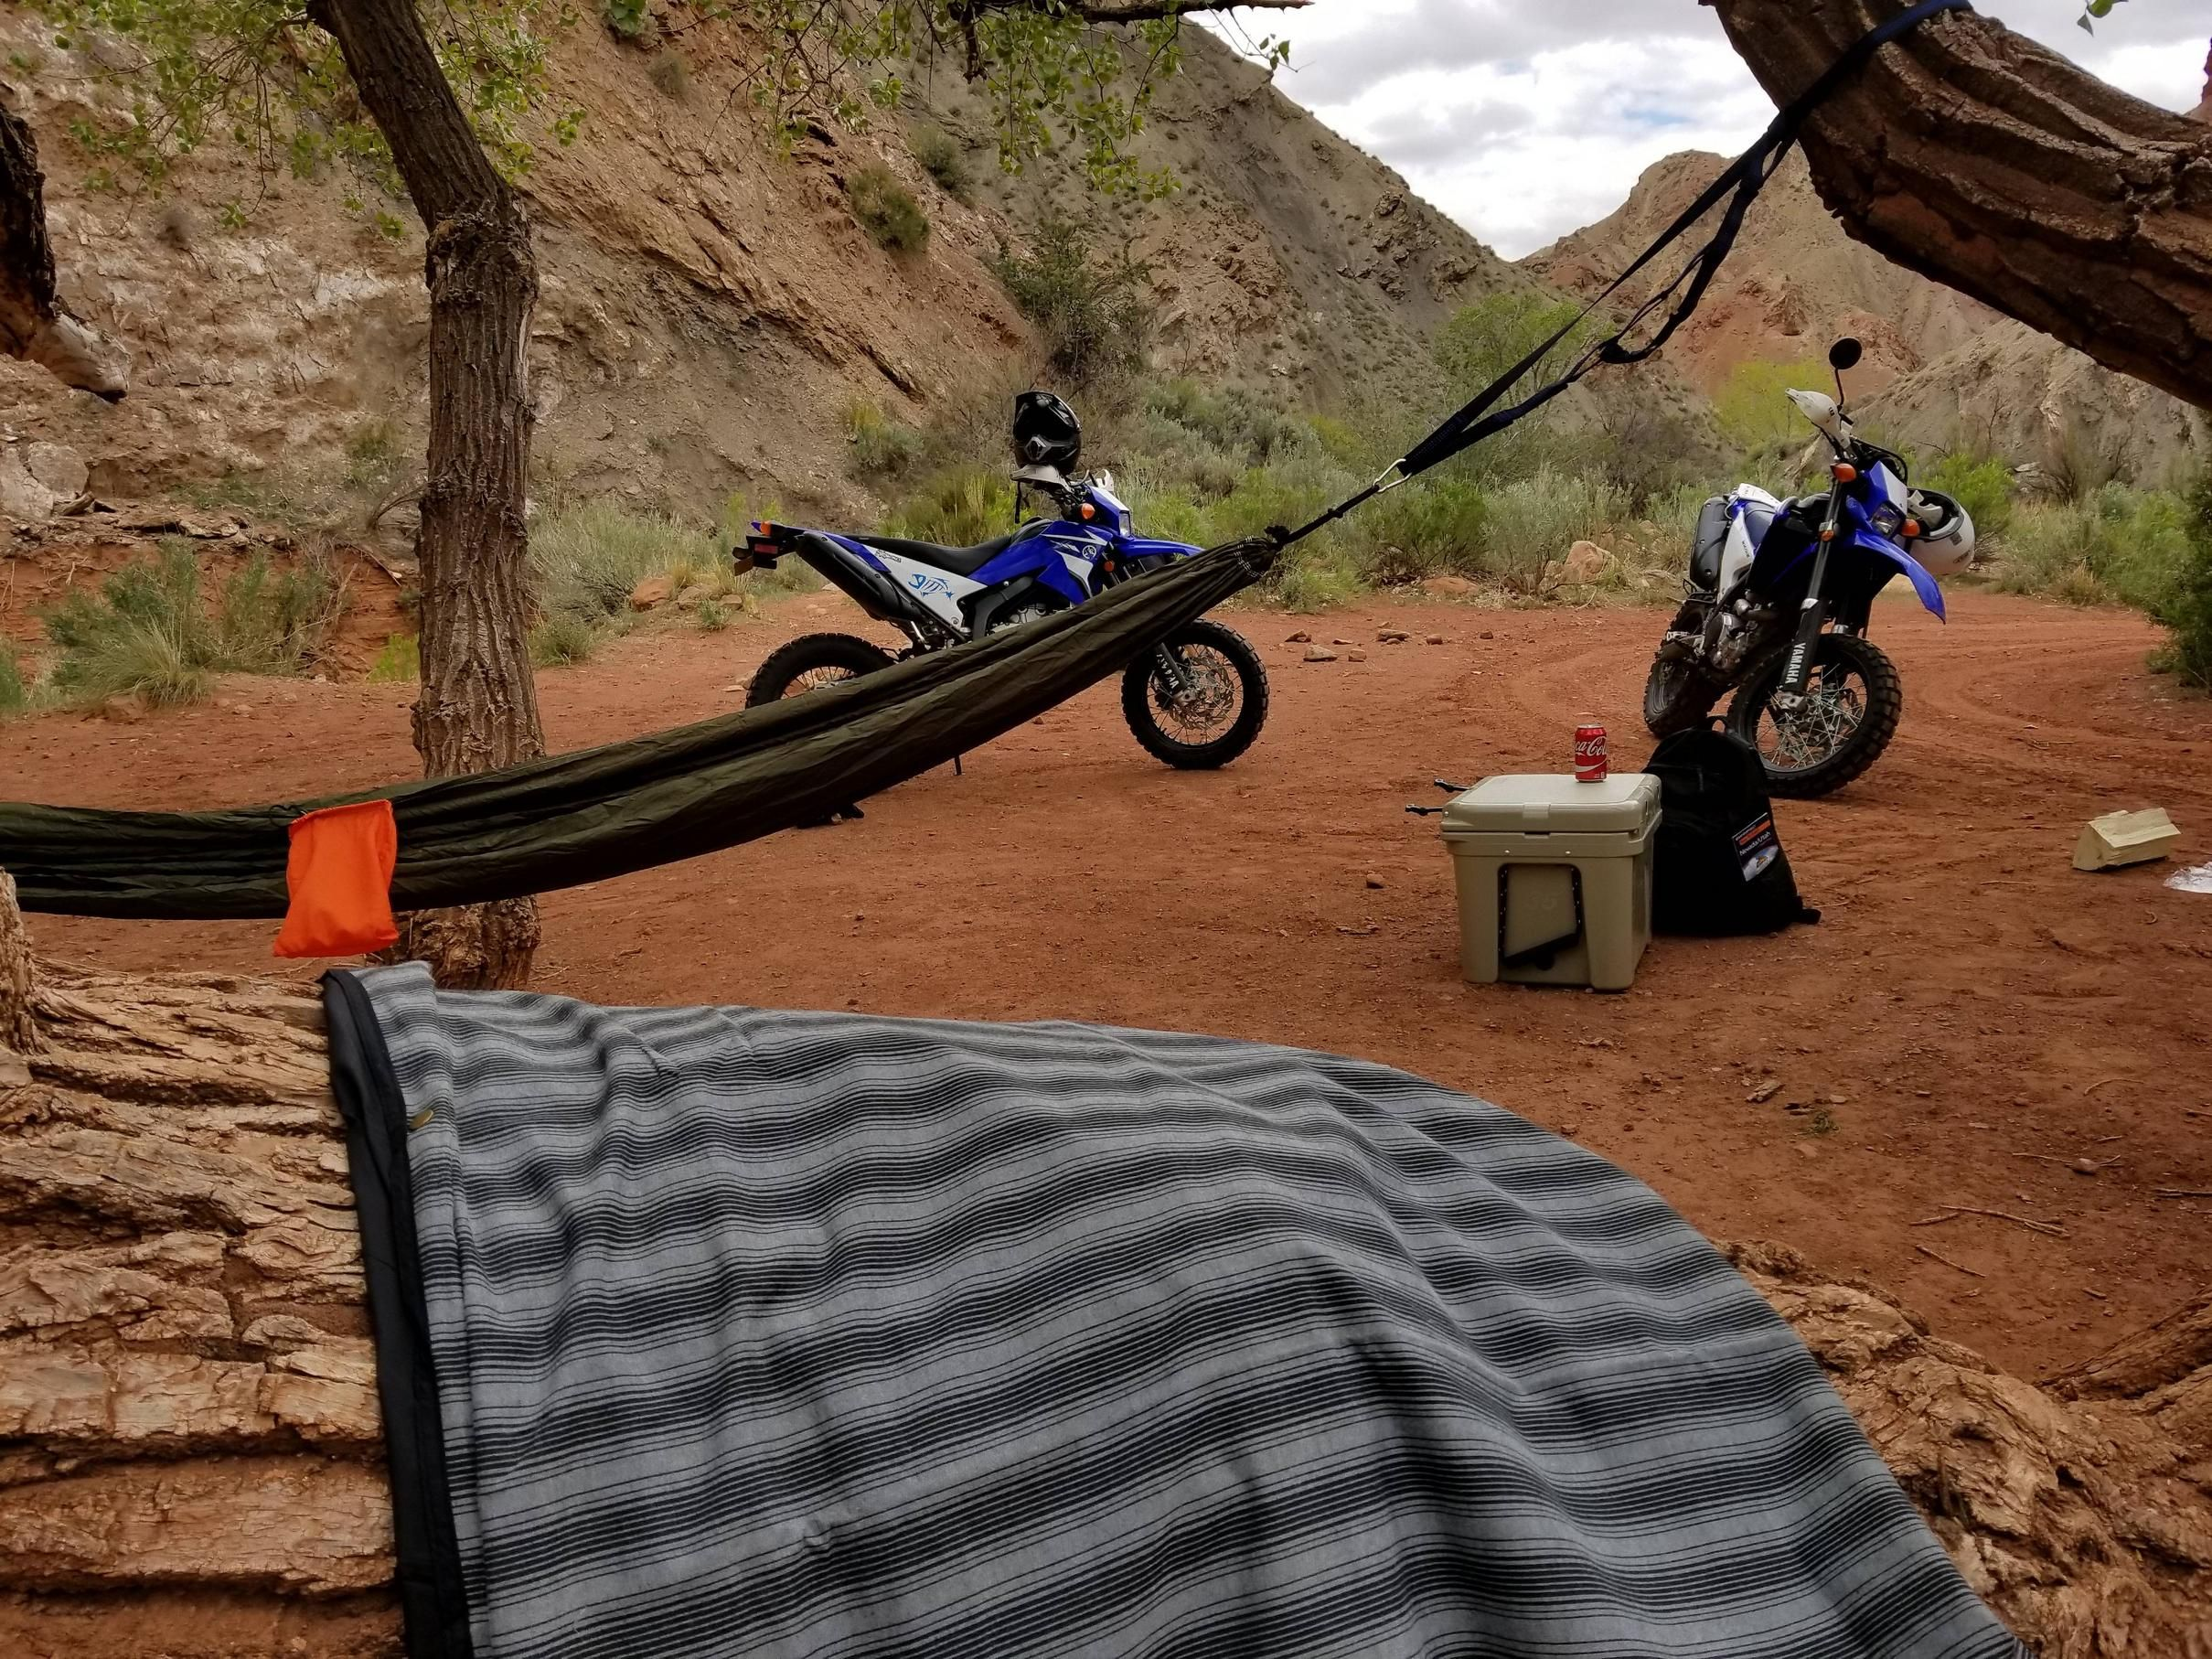 Follow up on the kachula adventure blanket camping